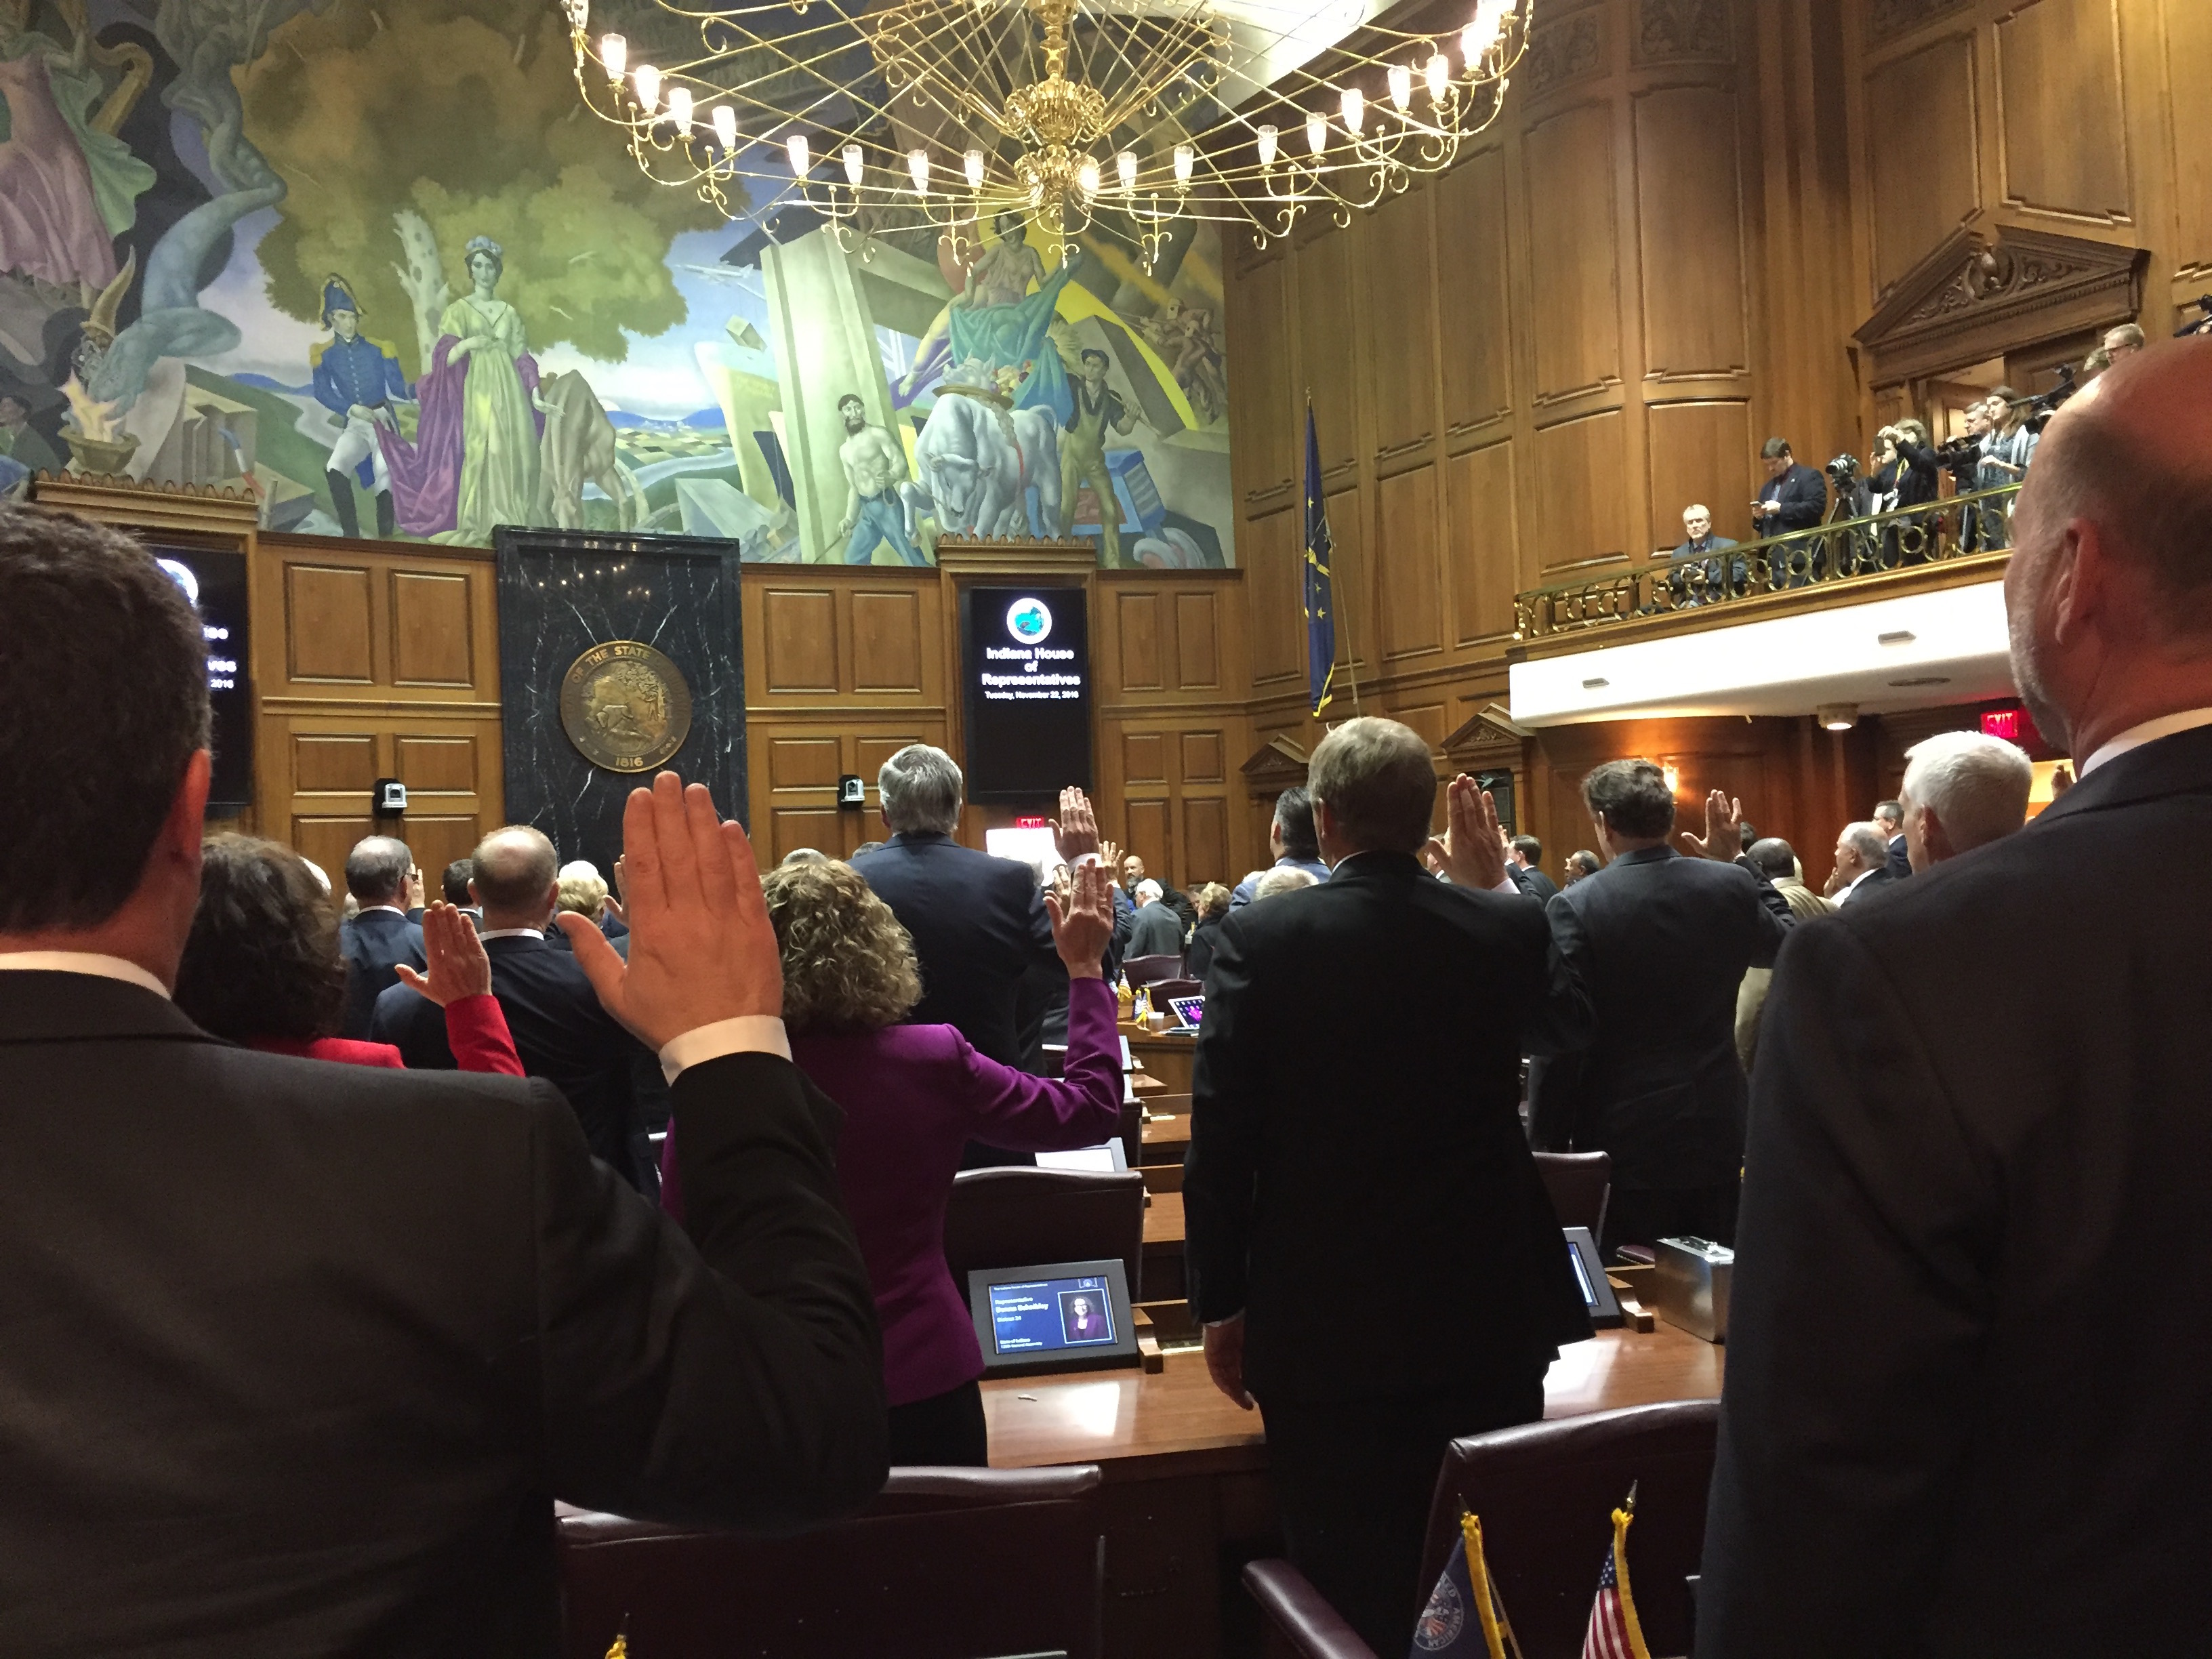 Indiana House Speaker Brian Bosma, R-Indianapolis, (right) and Rep. Todd Huston, R-Fishers, take the oath of office along with the rest of the House members during the annual Organization Day session to officially begin the 2017 legislative session.